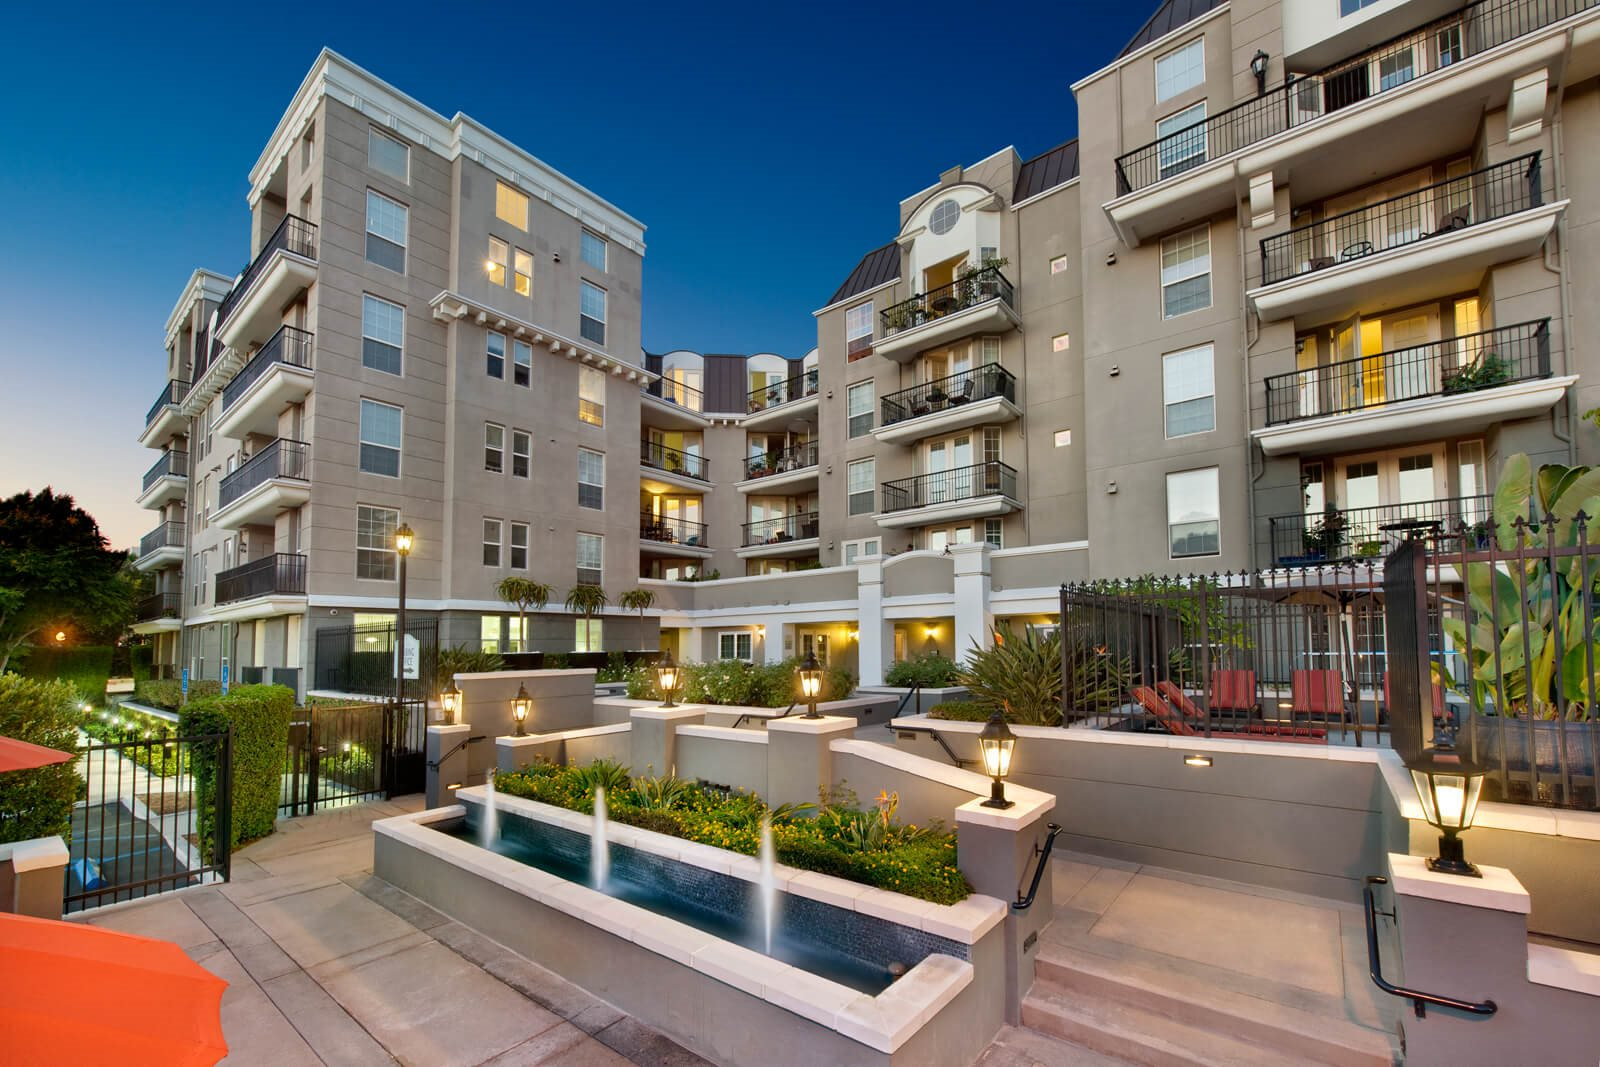 Luxury Apartment Homes Available at Windsor at Hancock Park, 445 North Rossmore Avenue, Los Angeles